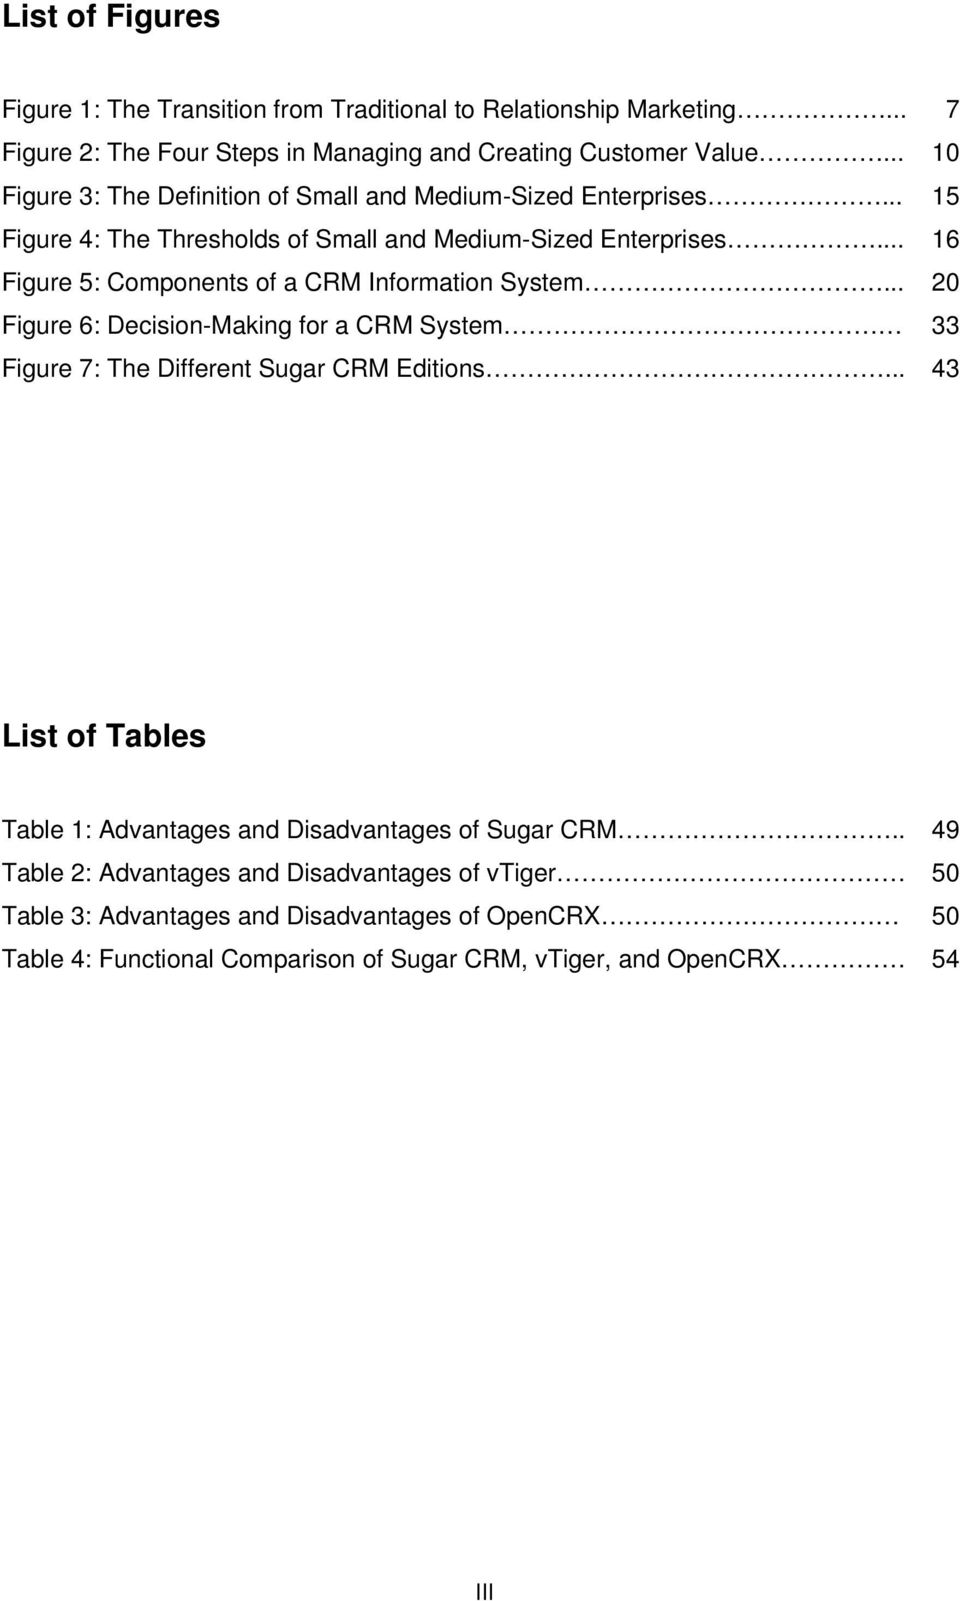 .. 16 Figure 5: Components of a CRM Information System... 20 Figure 6: Decision-Making for a CRM System 33 Figure 7: The Different Sugar CRM Editions.